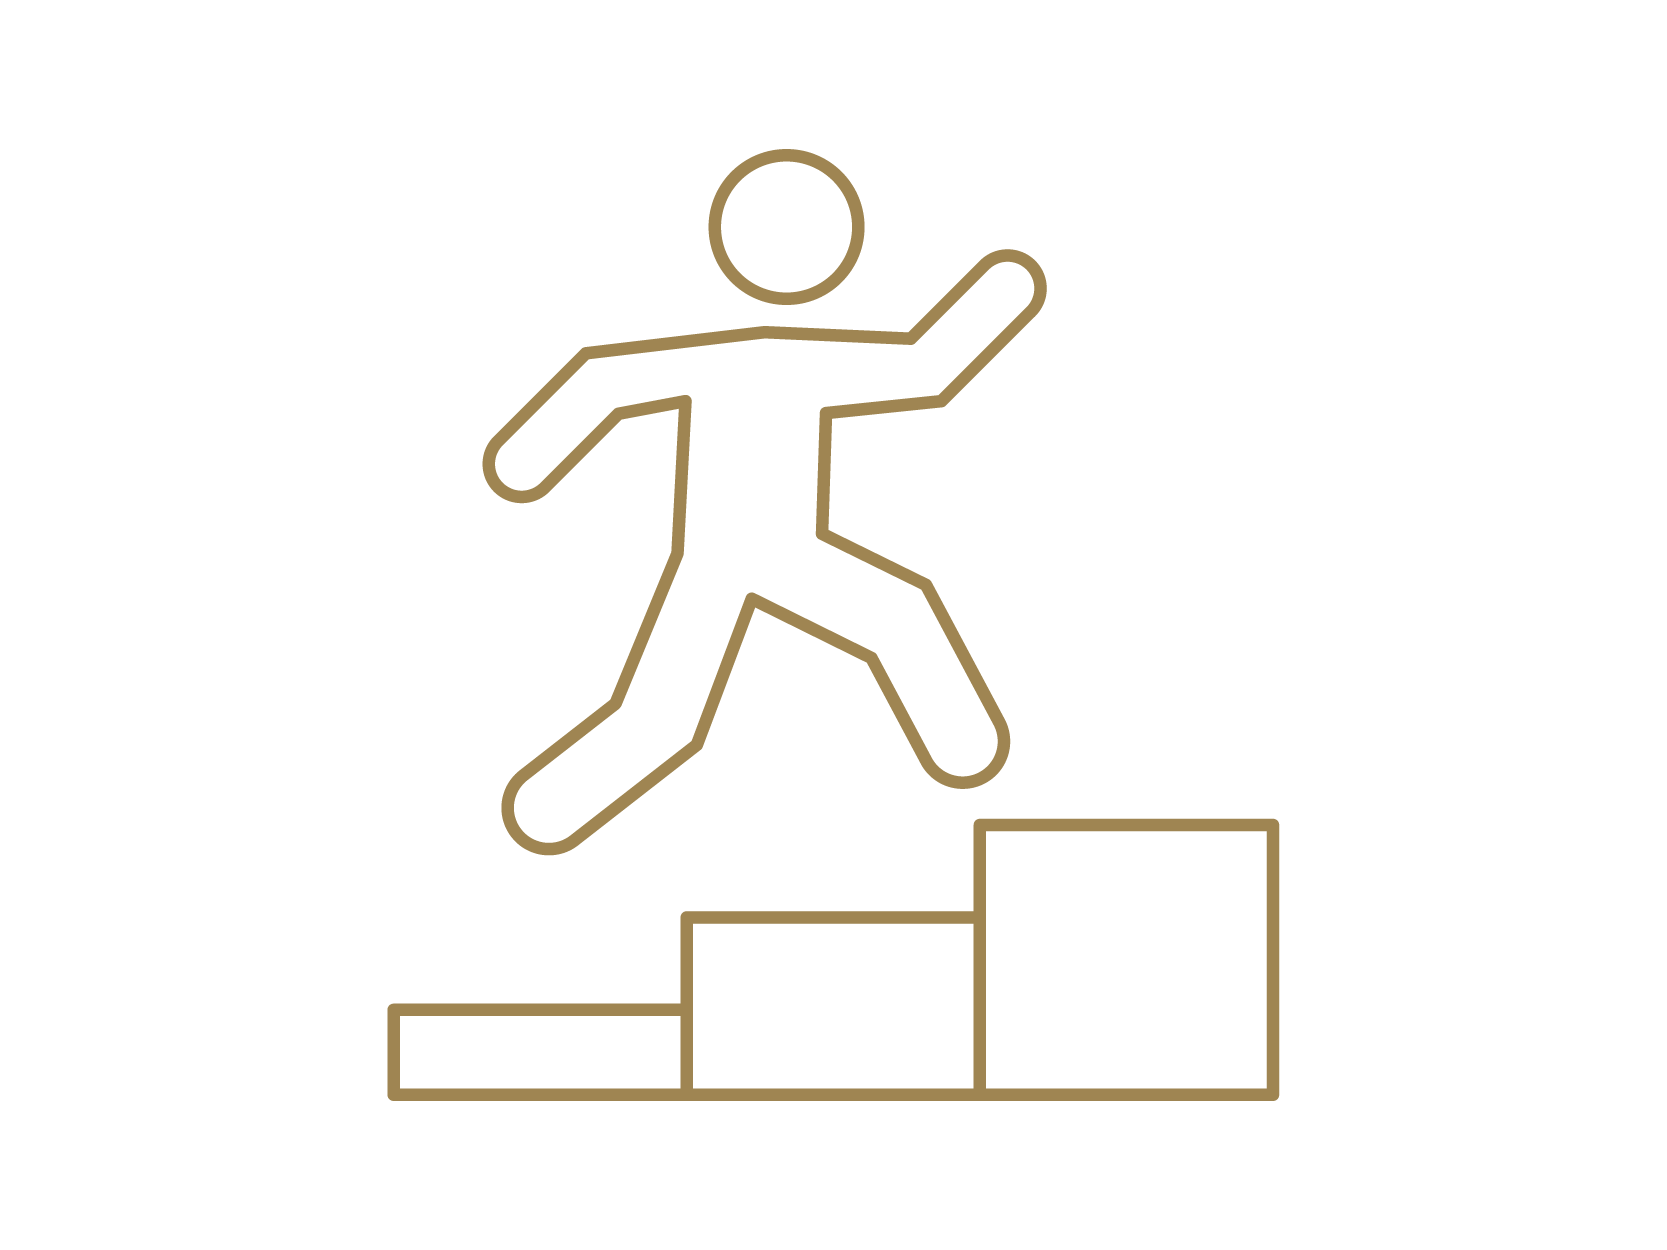 Icon of a person running up stairs